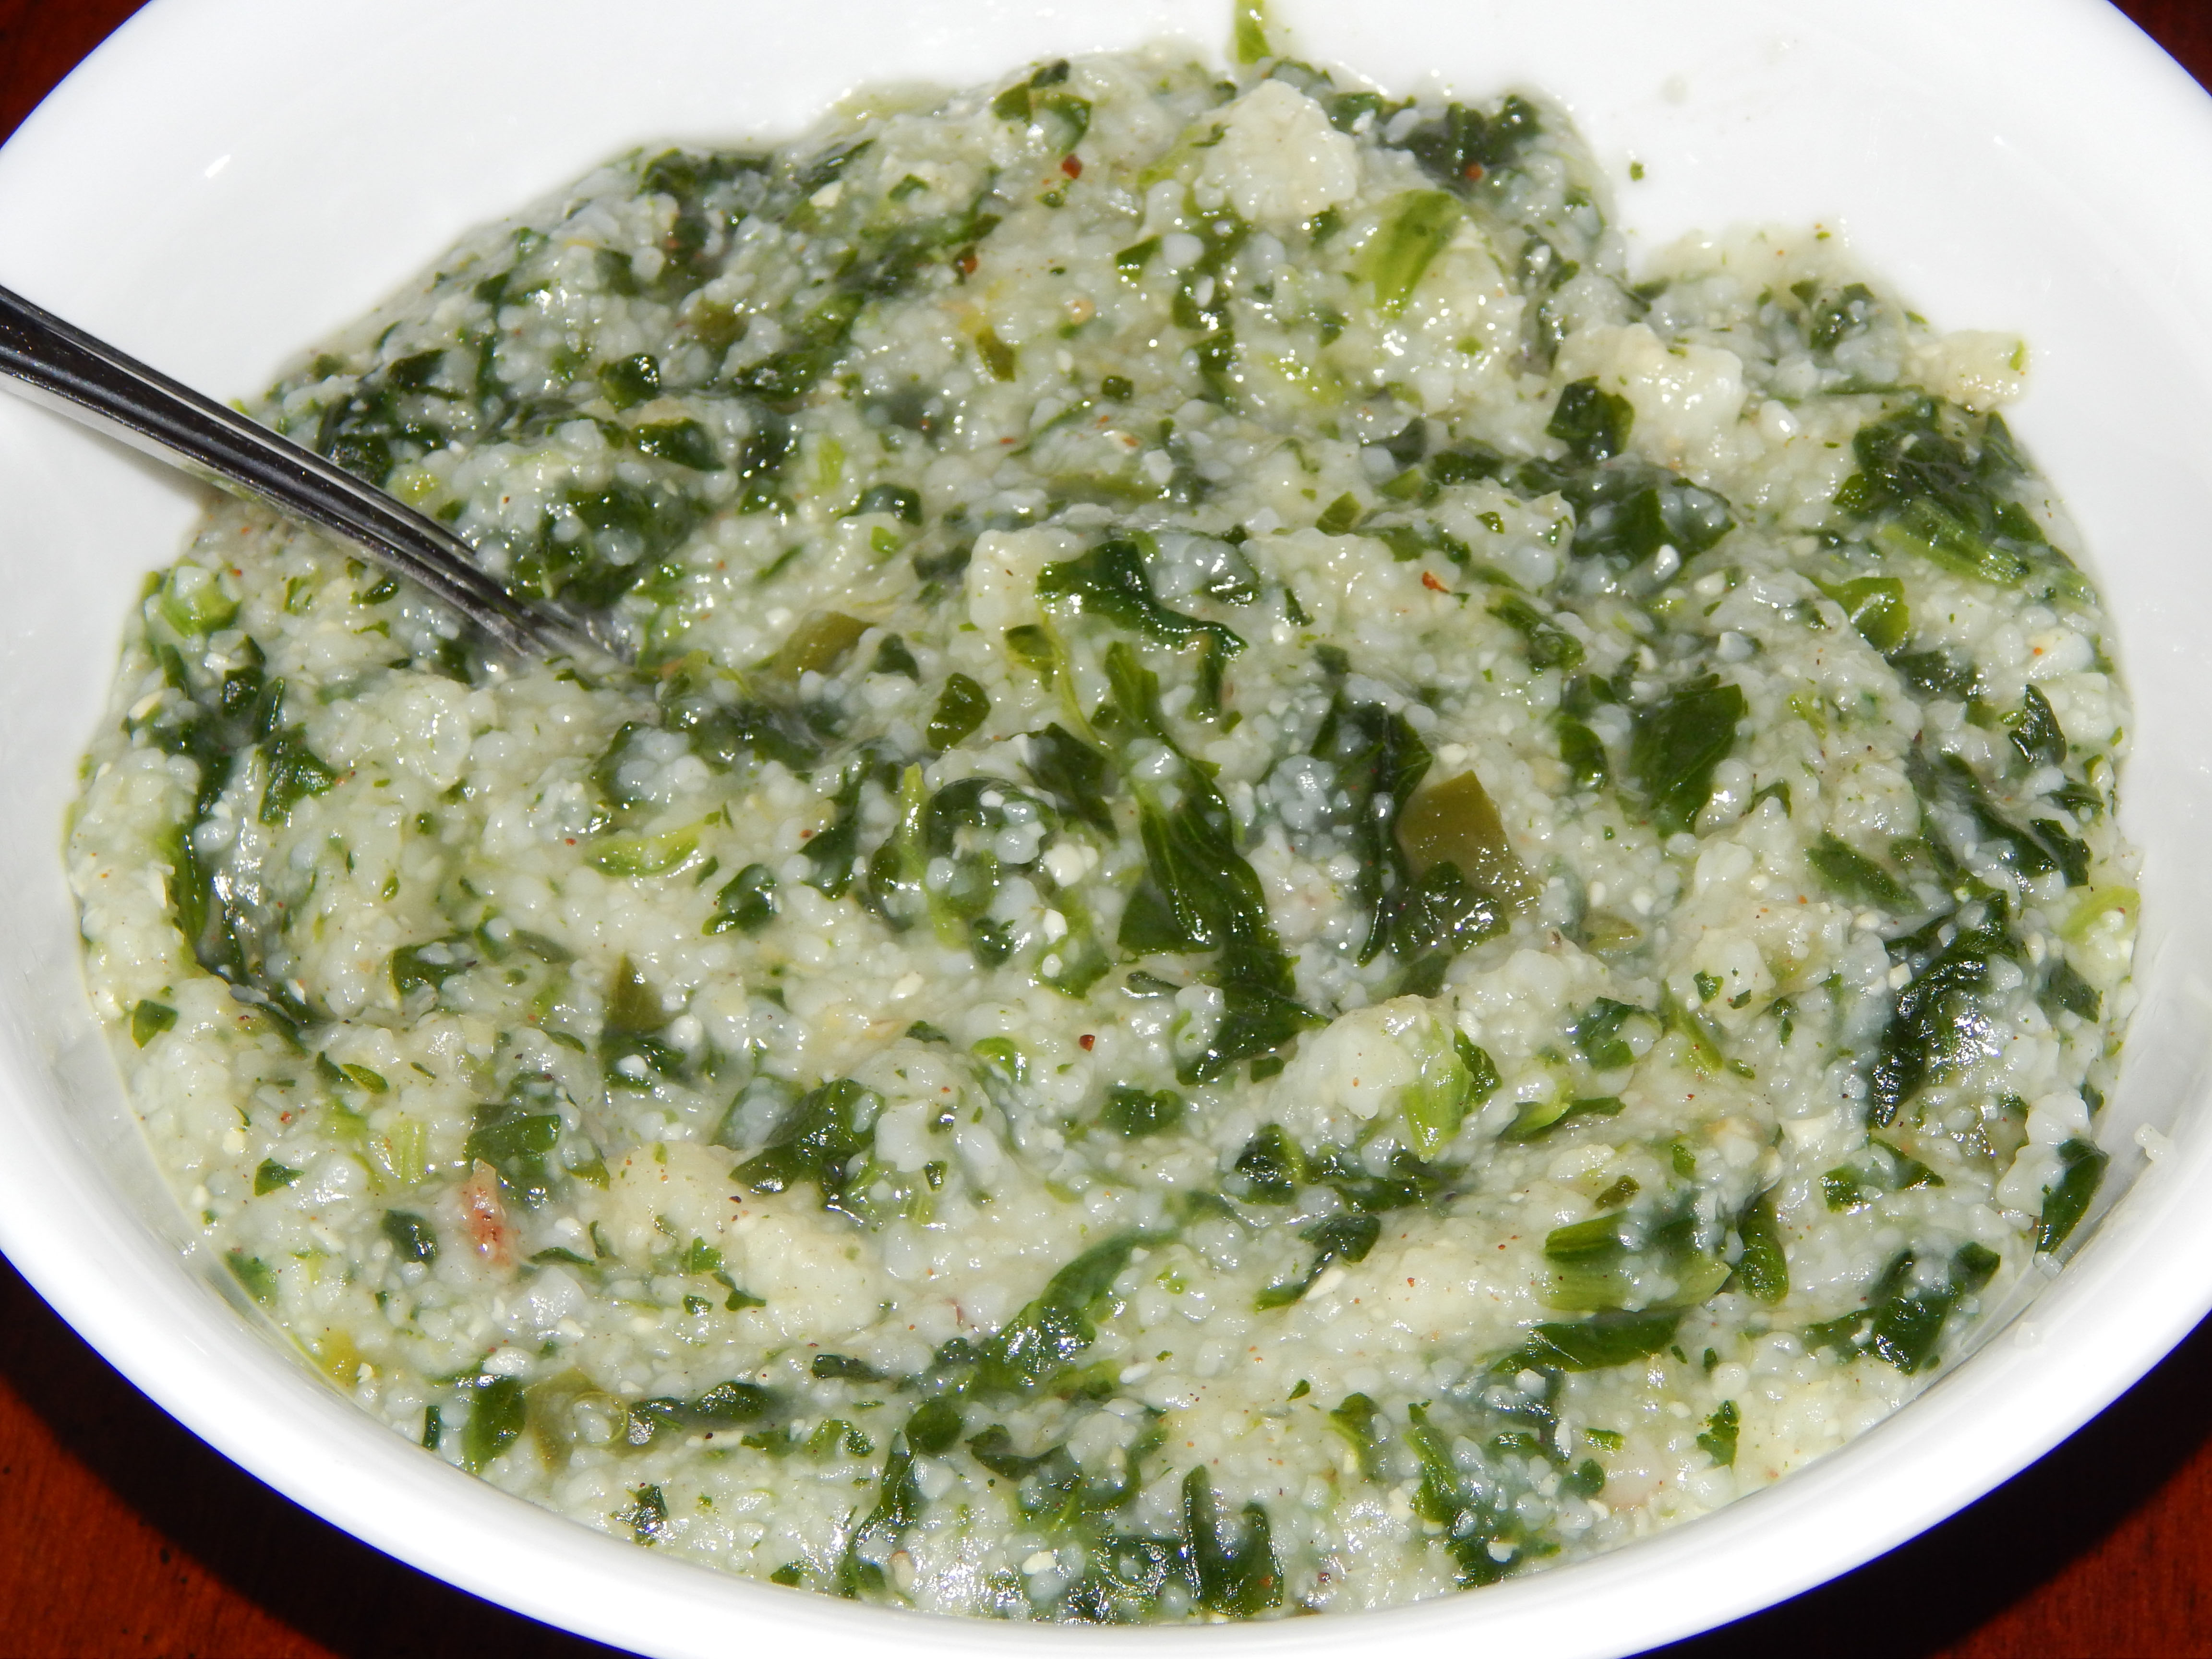 Green Grits (Grits with Spinach)